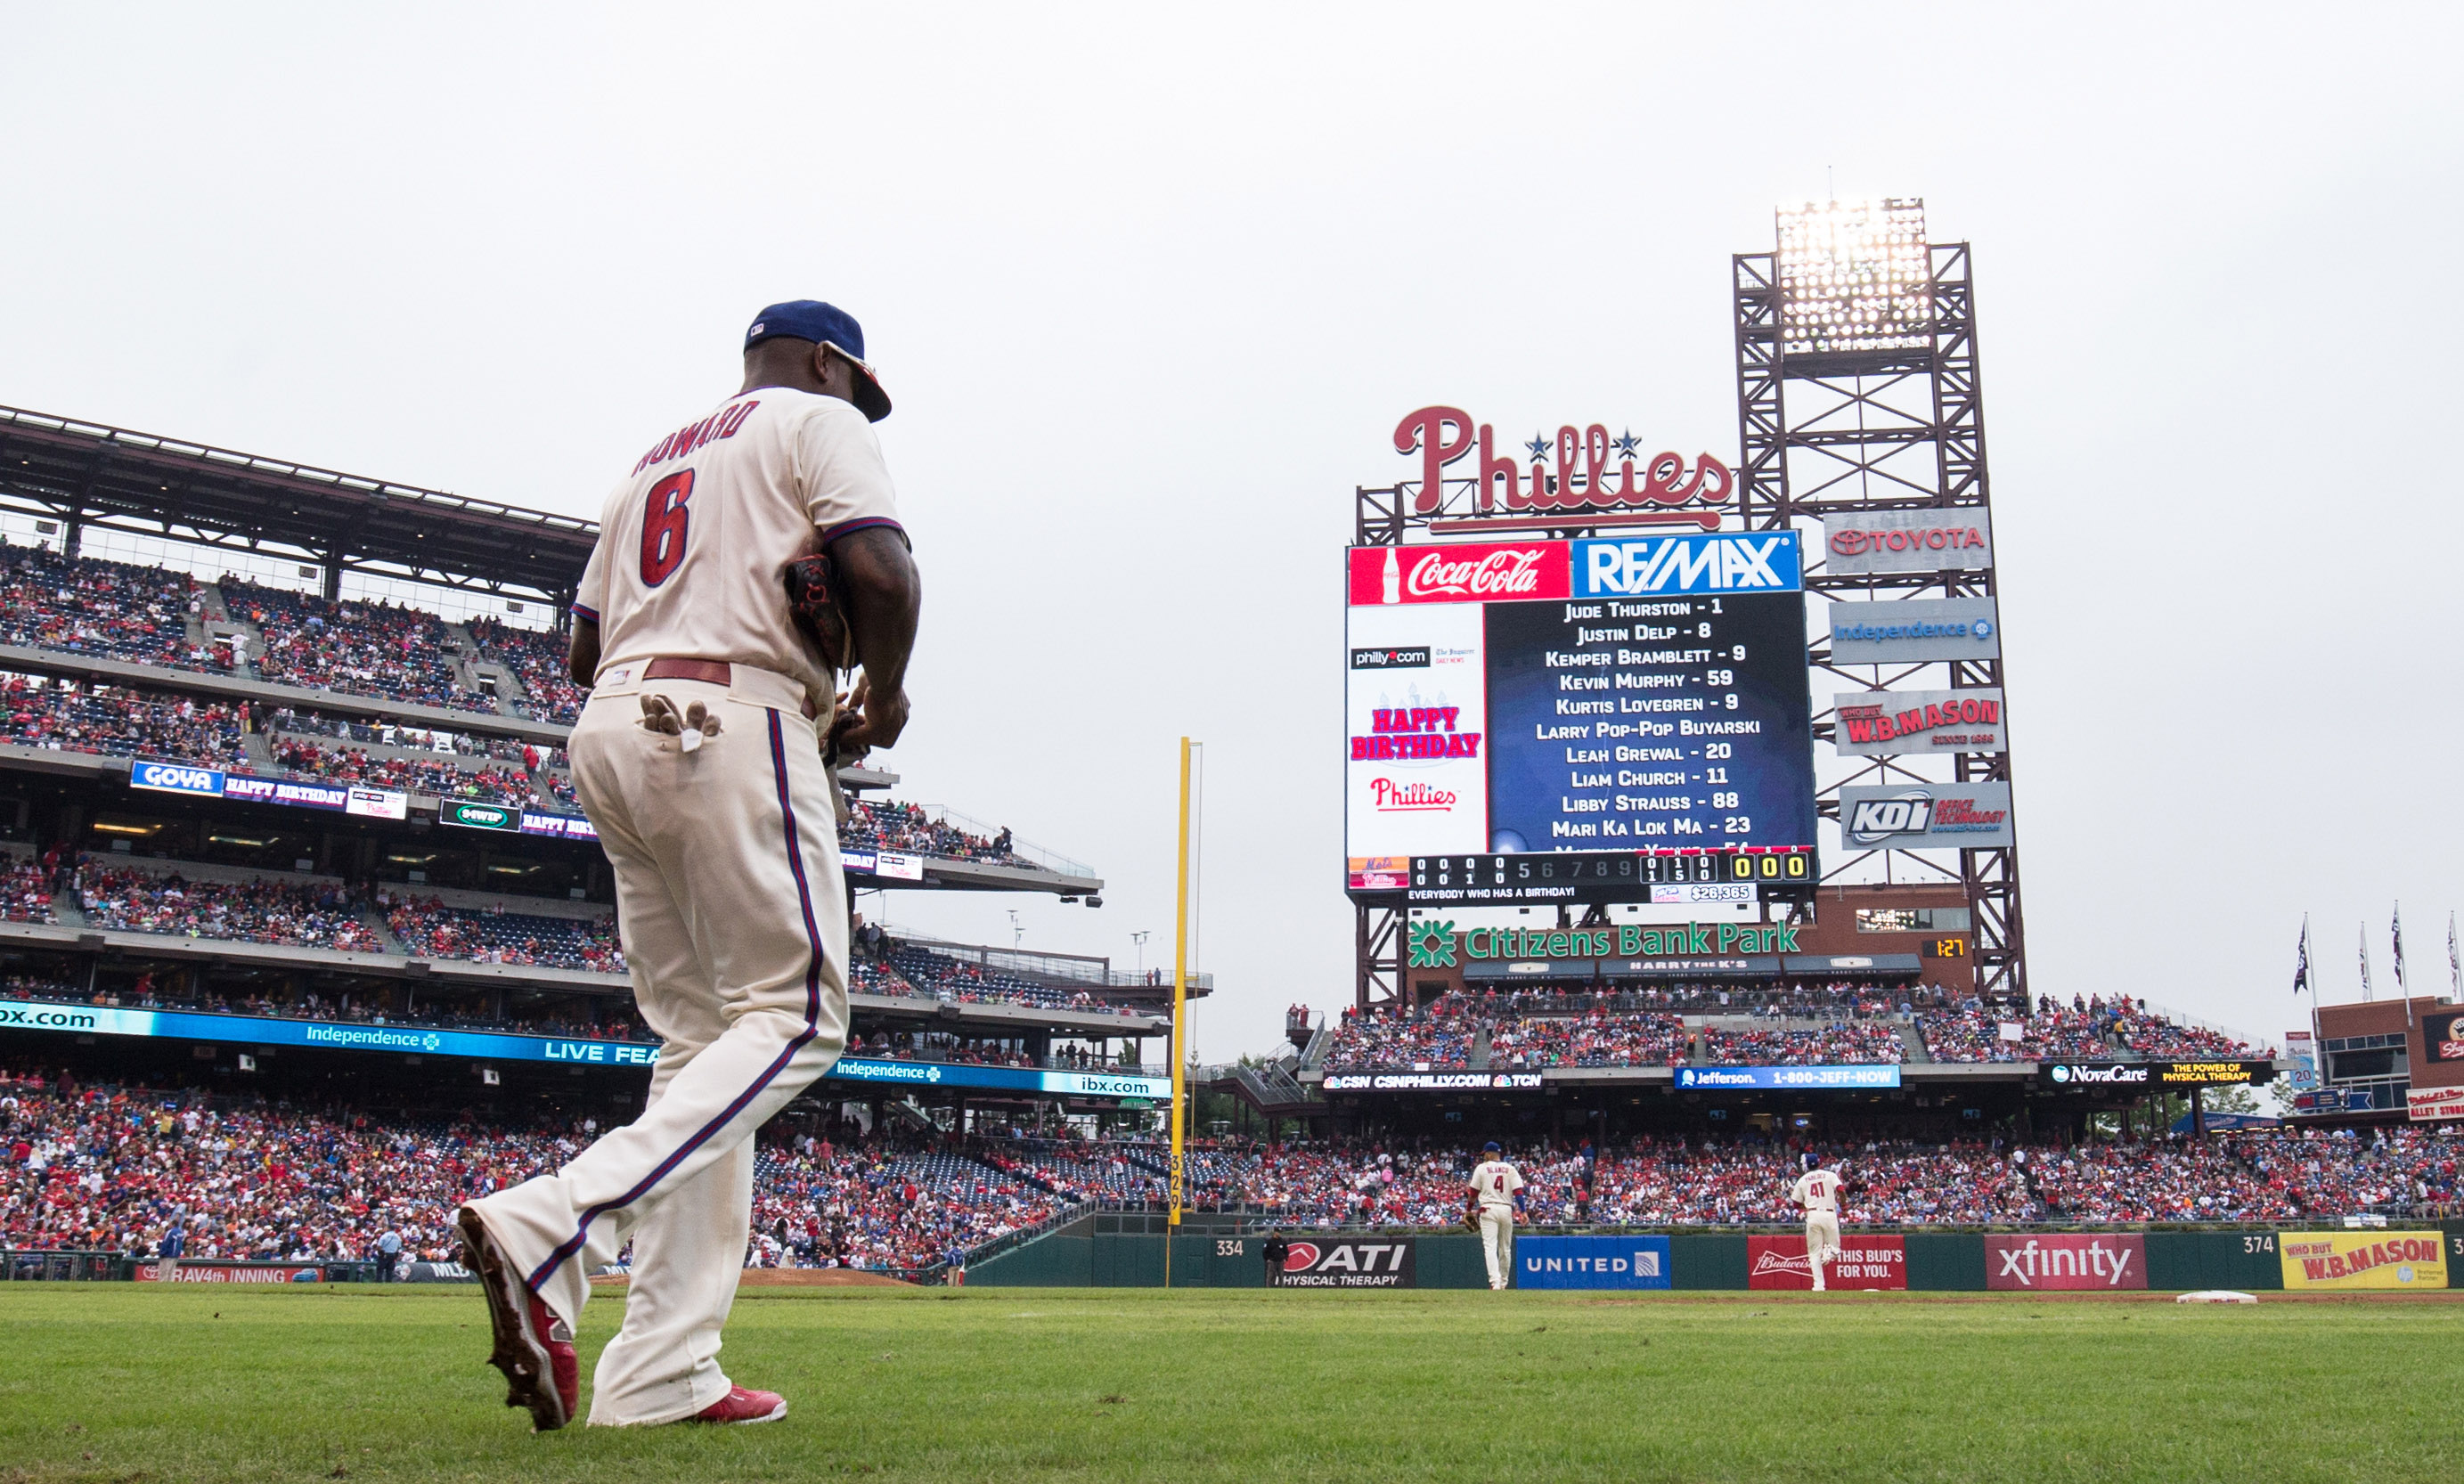 9586521-mlb-new-york-mets-at-philadelphia-phillies